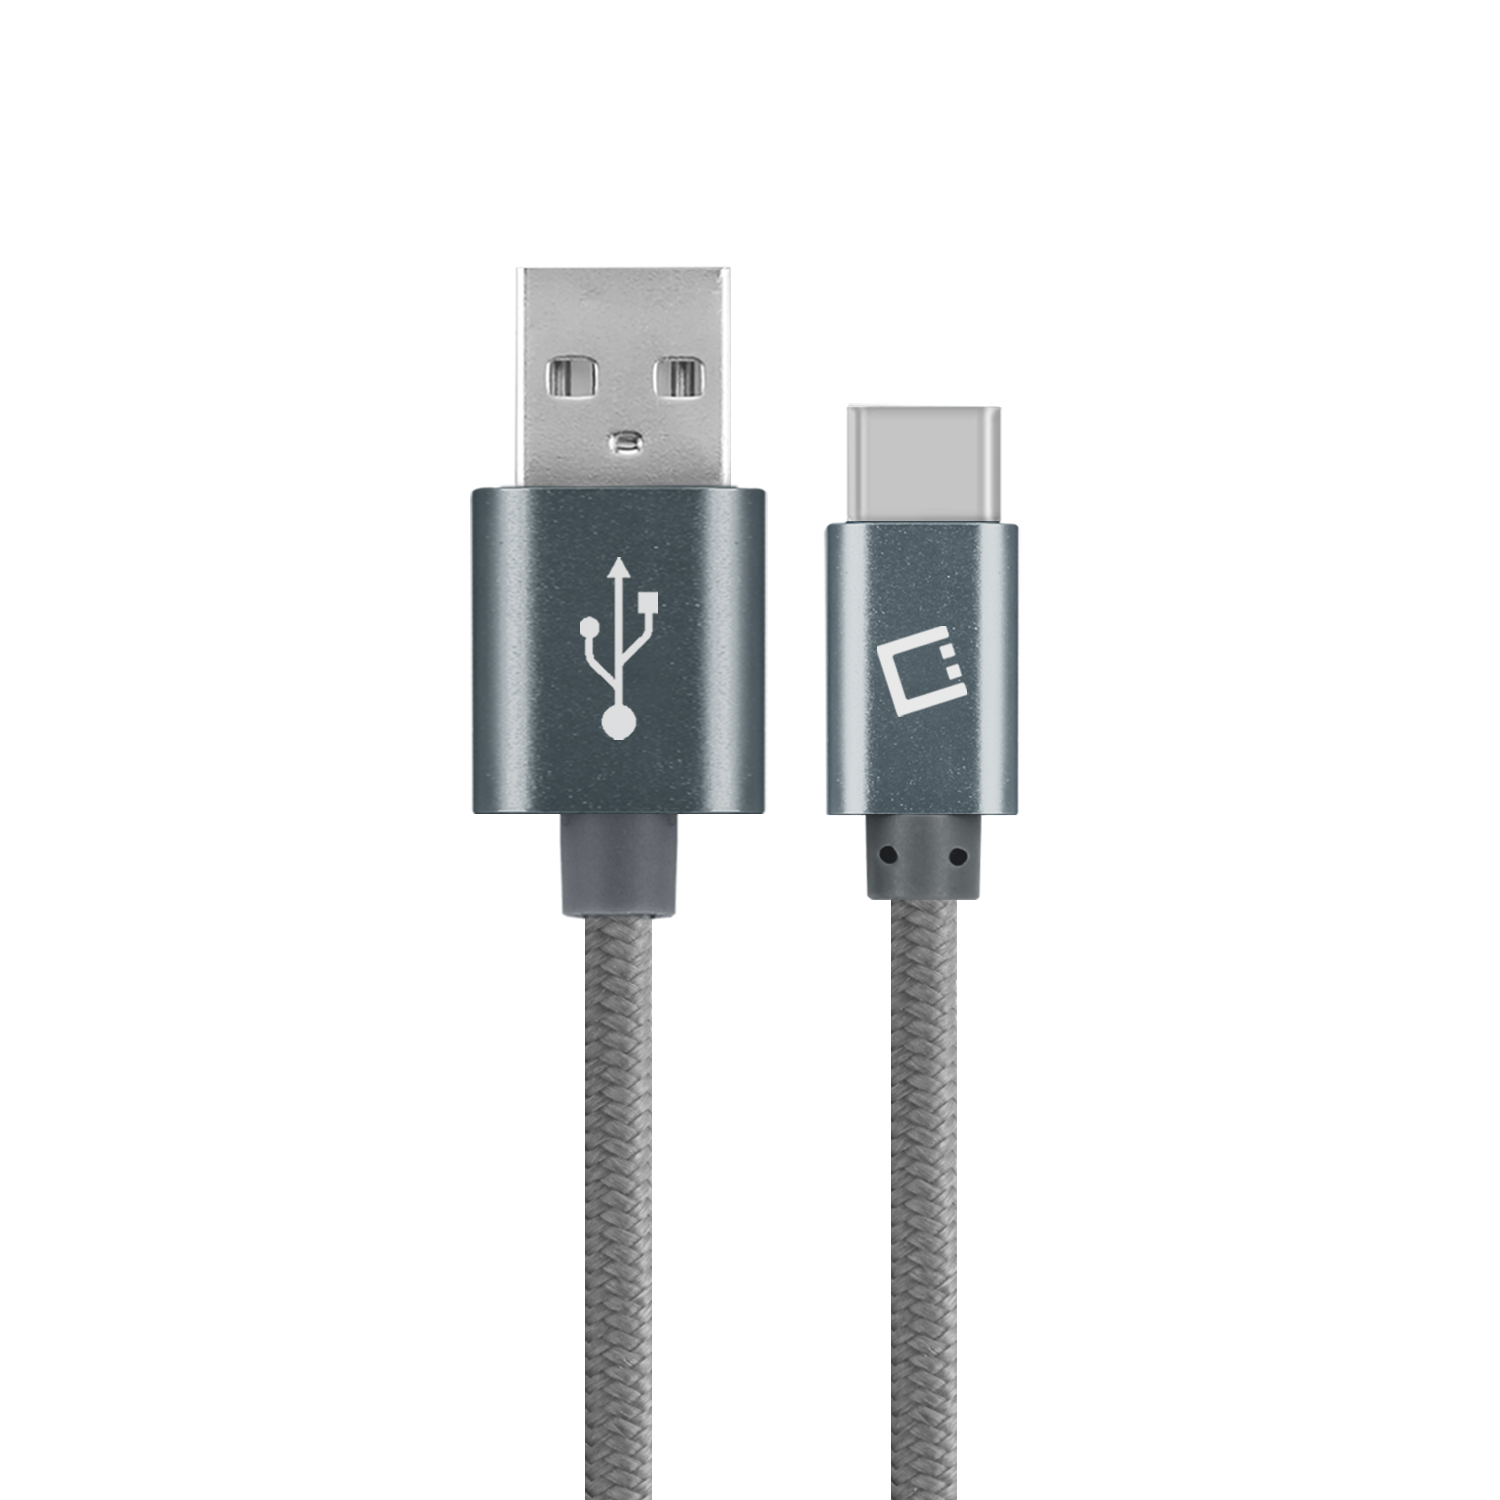 Samsung Galaxy A51 5G USB Type-C To Type-A Braided Data Power Cable Grey 10ft Braided